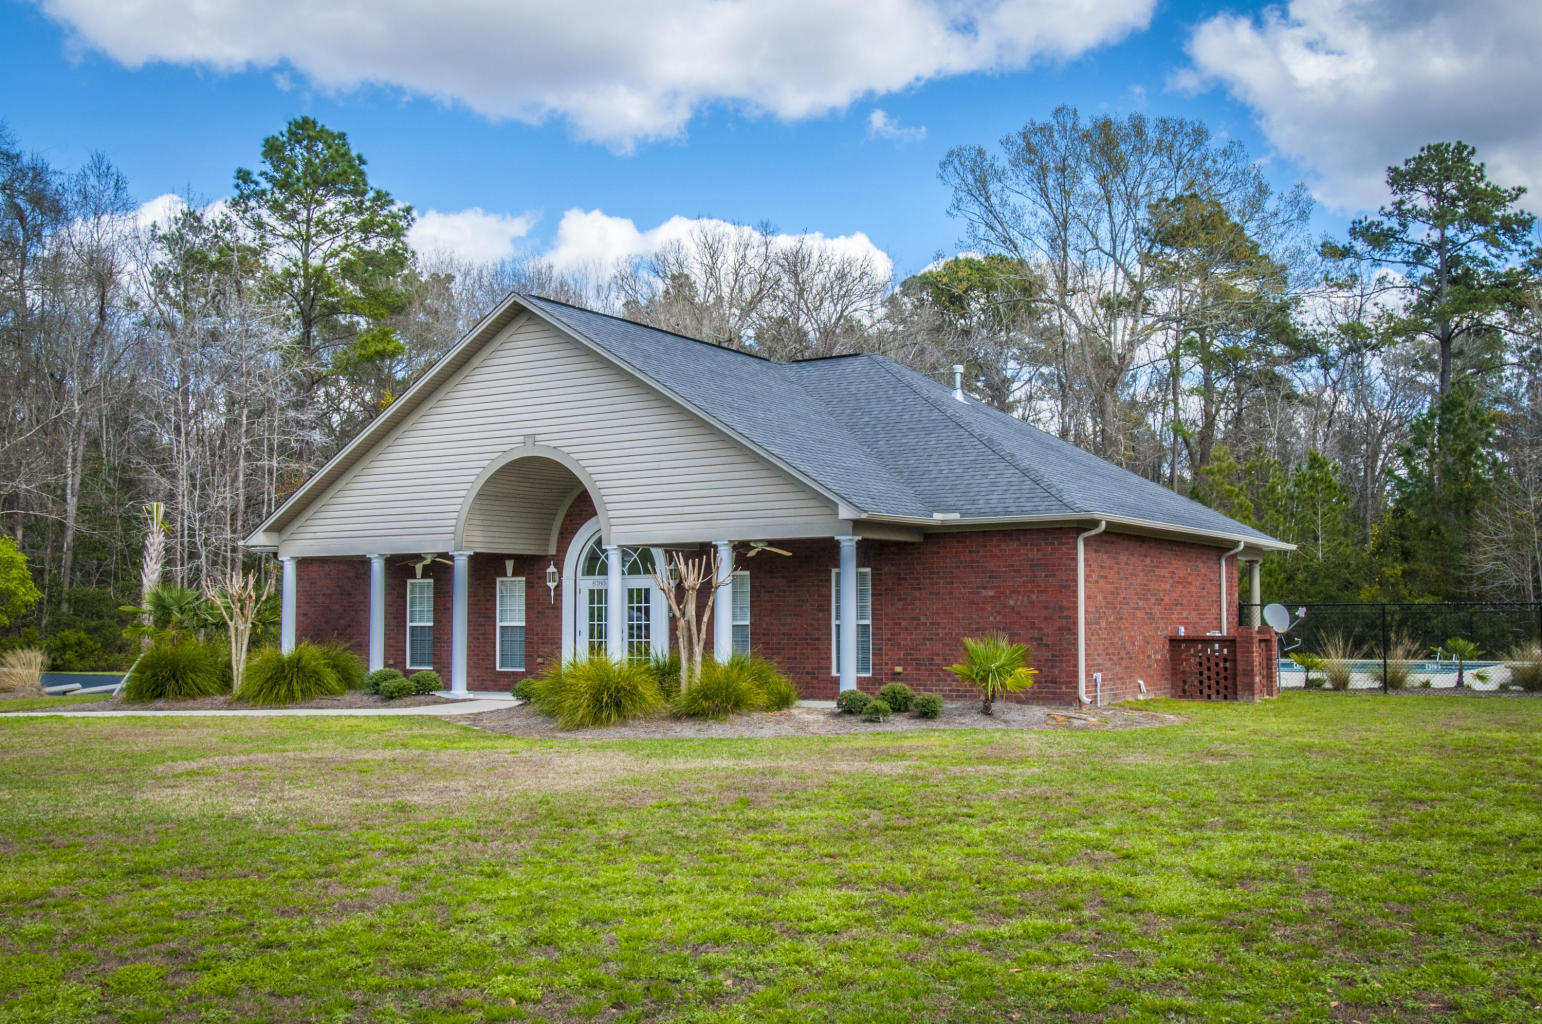 Photo of 5426 Clearview Dr, North Charleston, SC 29420